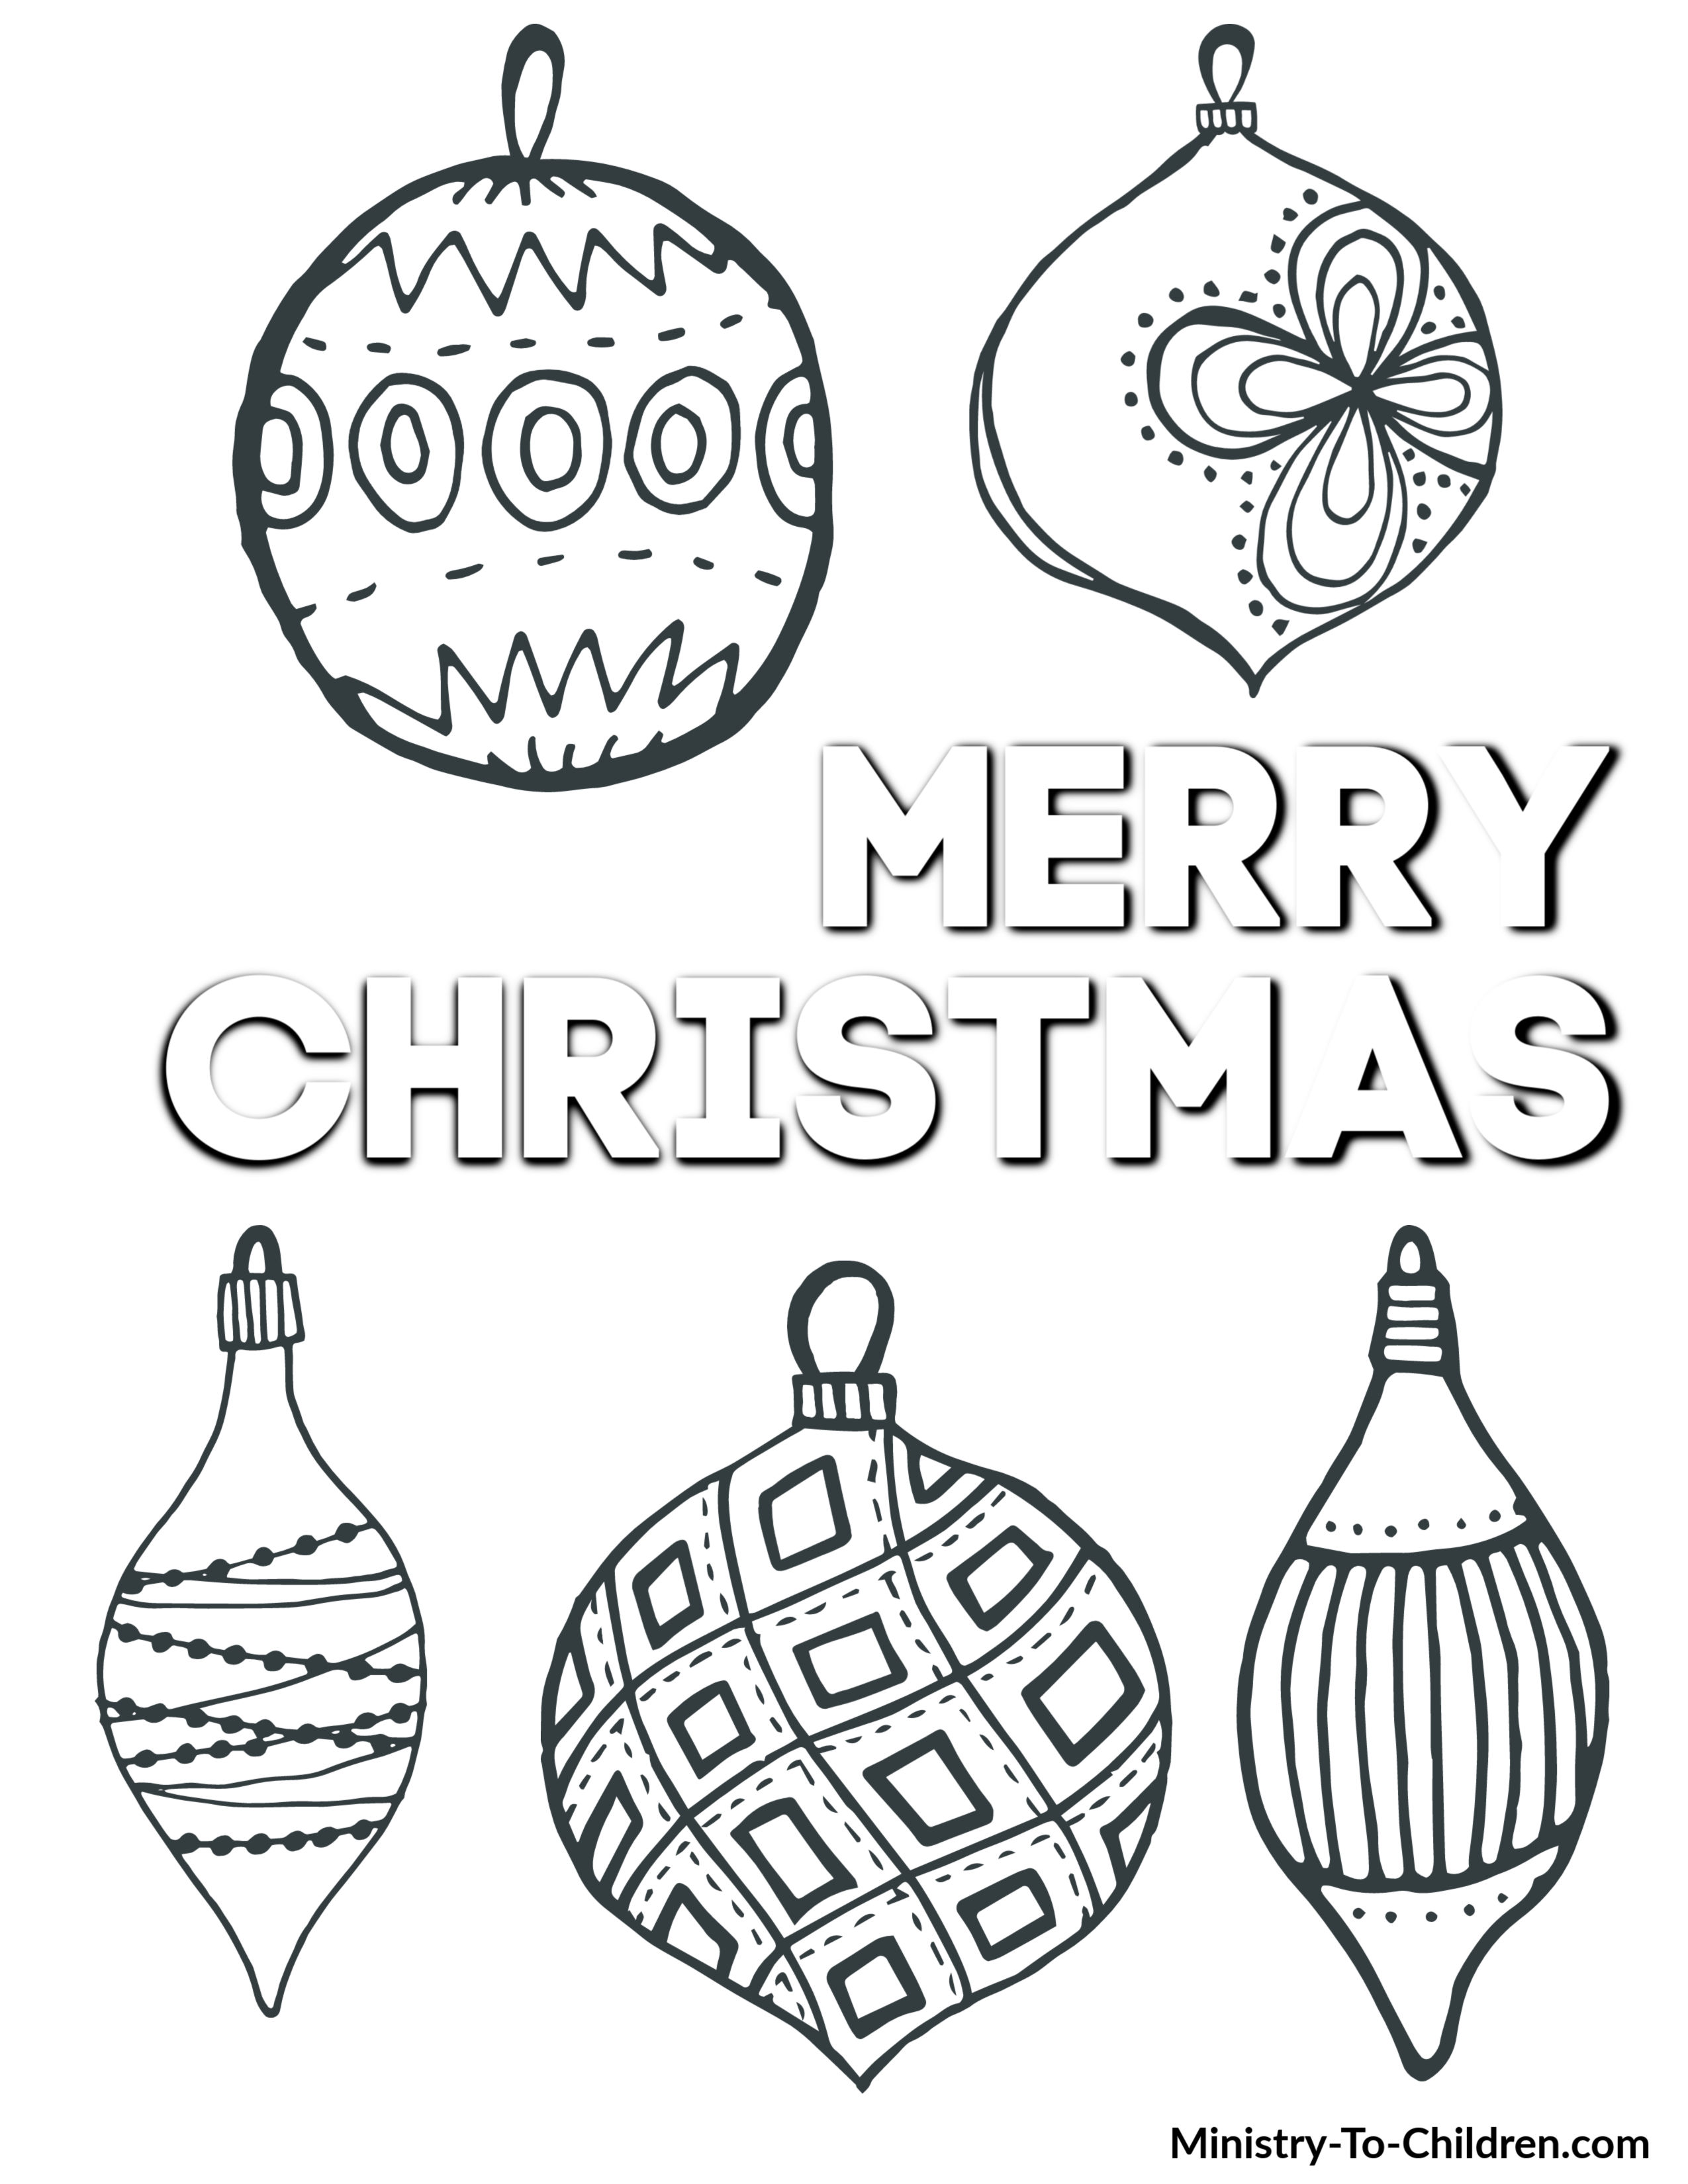 Advent Coloring Pages & Activities for Kids - Sunday School ...